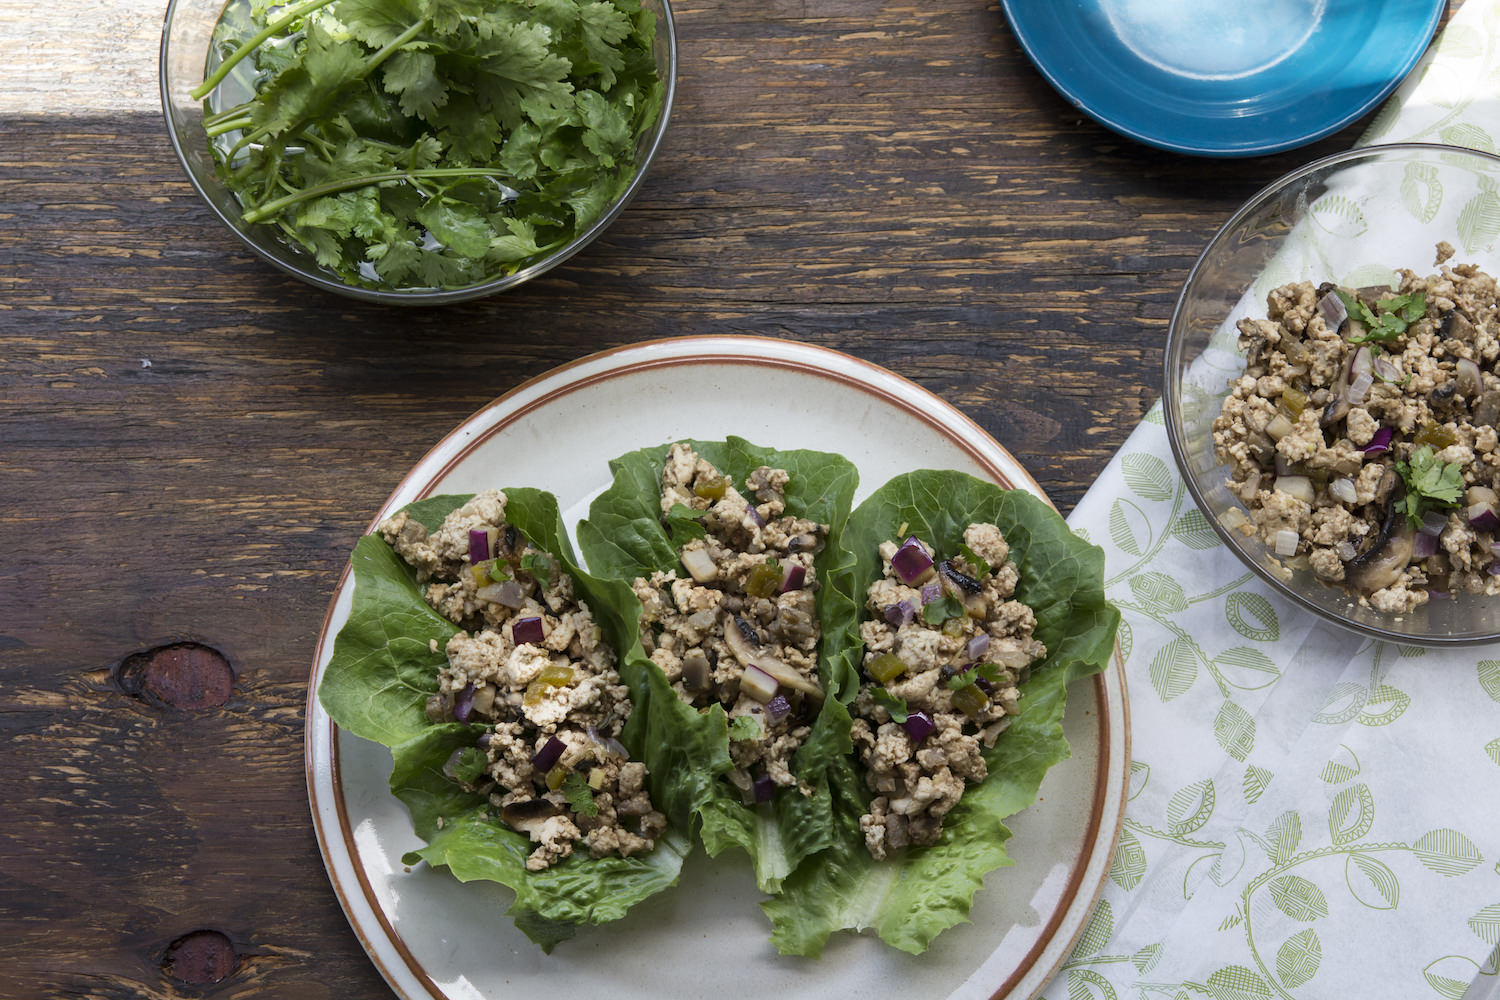 10 Recipes for Healthy Eating on a Budget, photo by Cheryl Wiwat